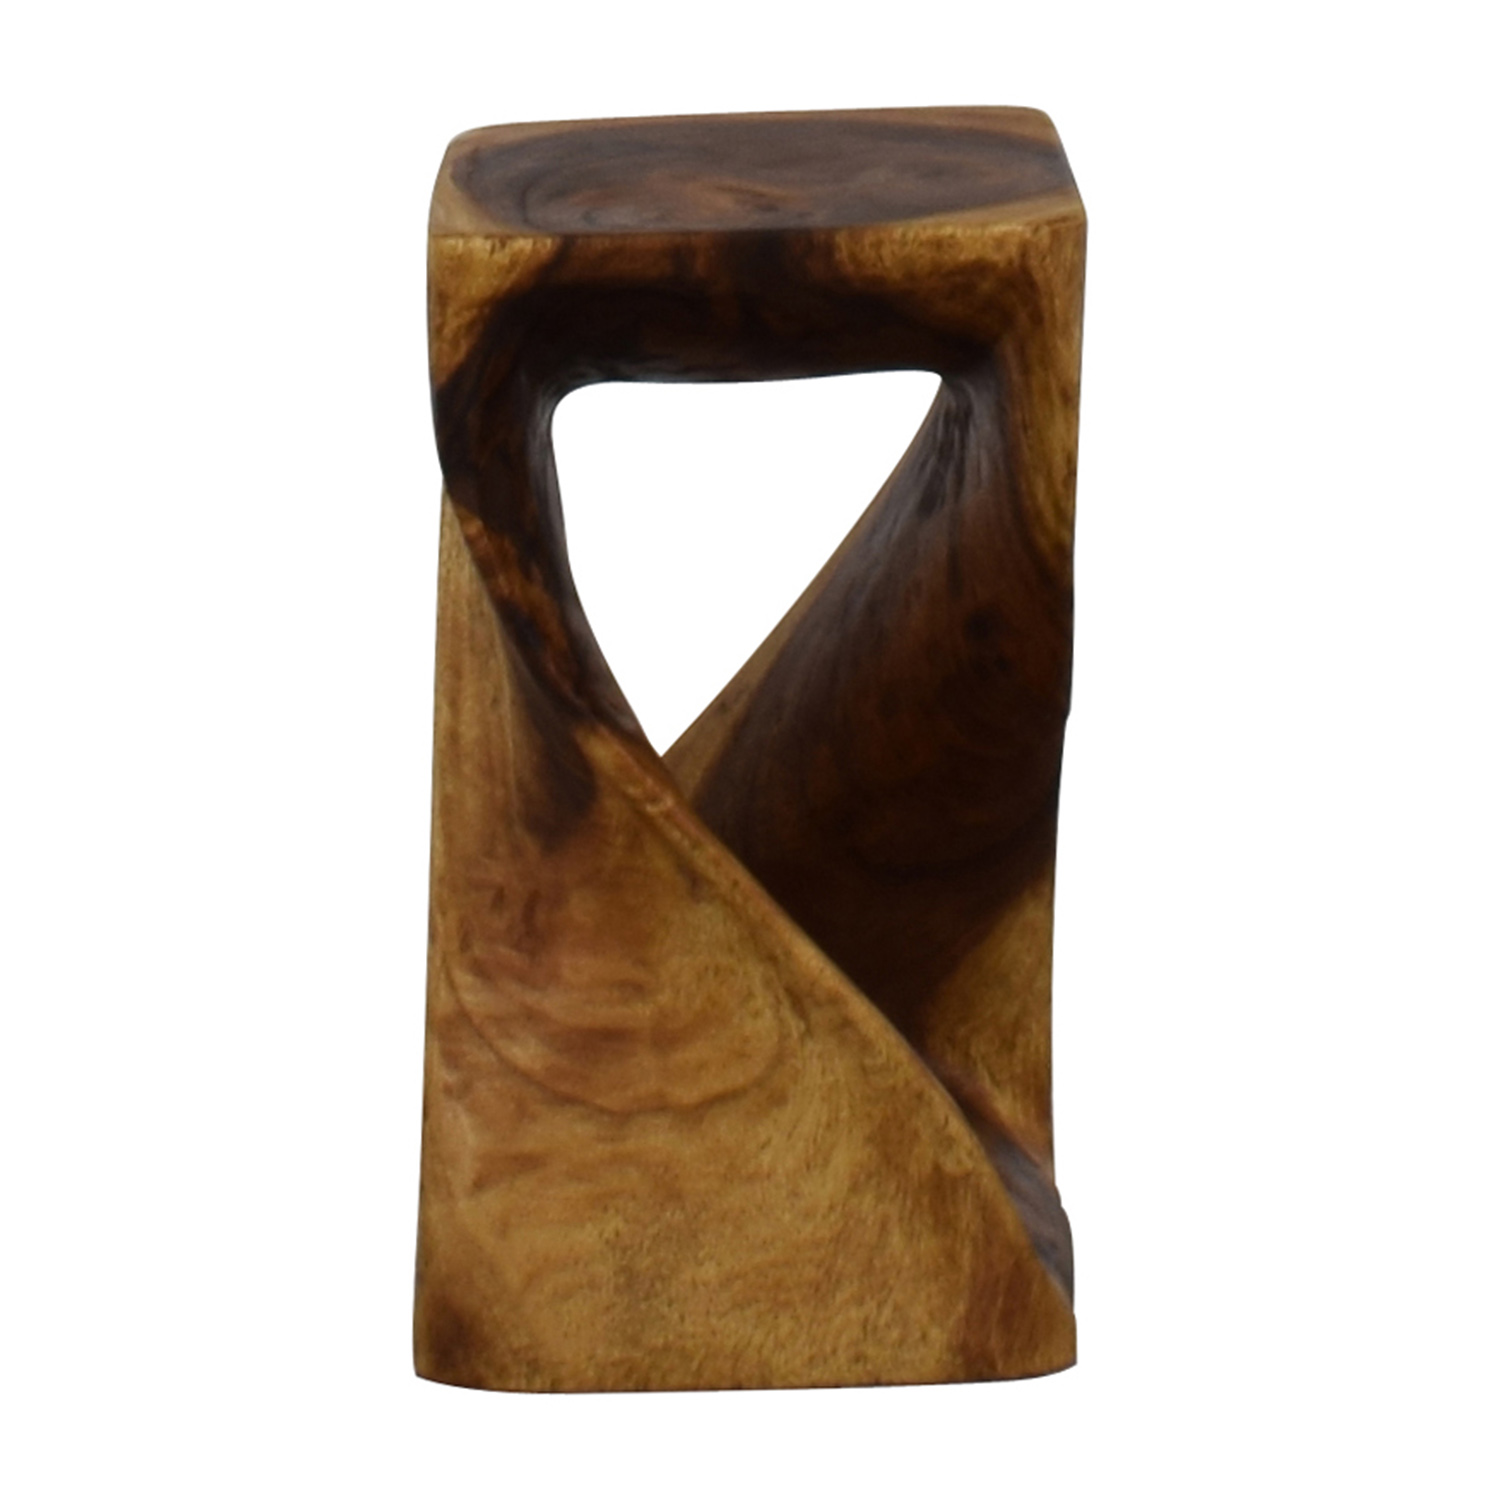 Haussmann Haussmann Hand-carved Walnut Oil Twist Stool coupon